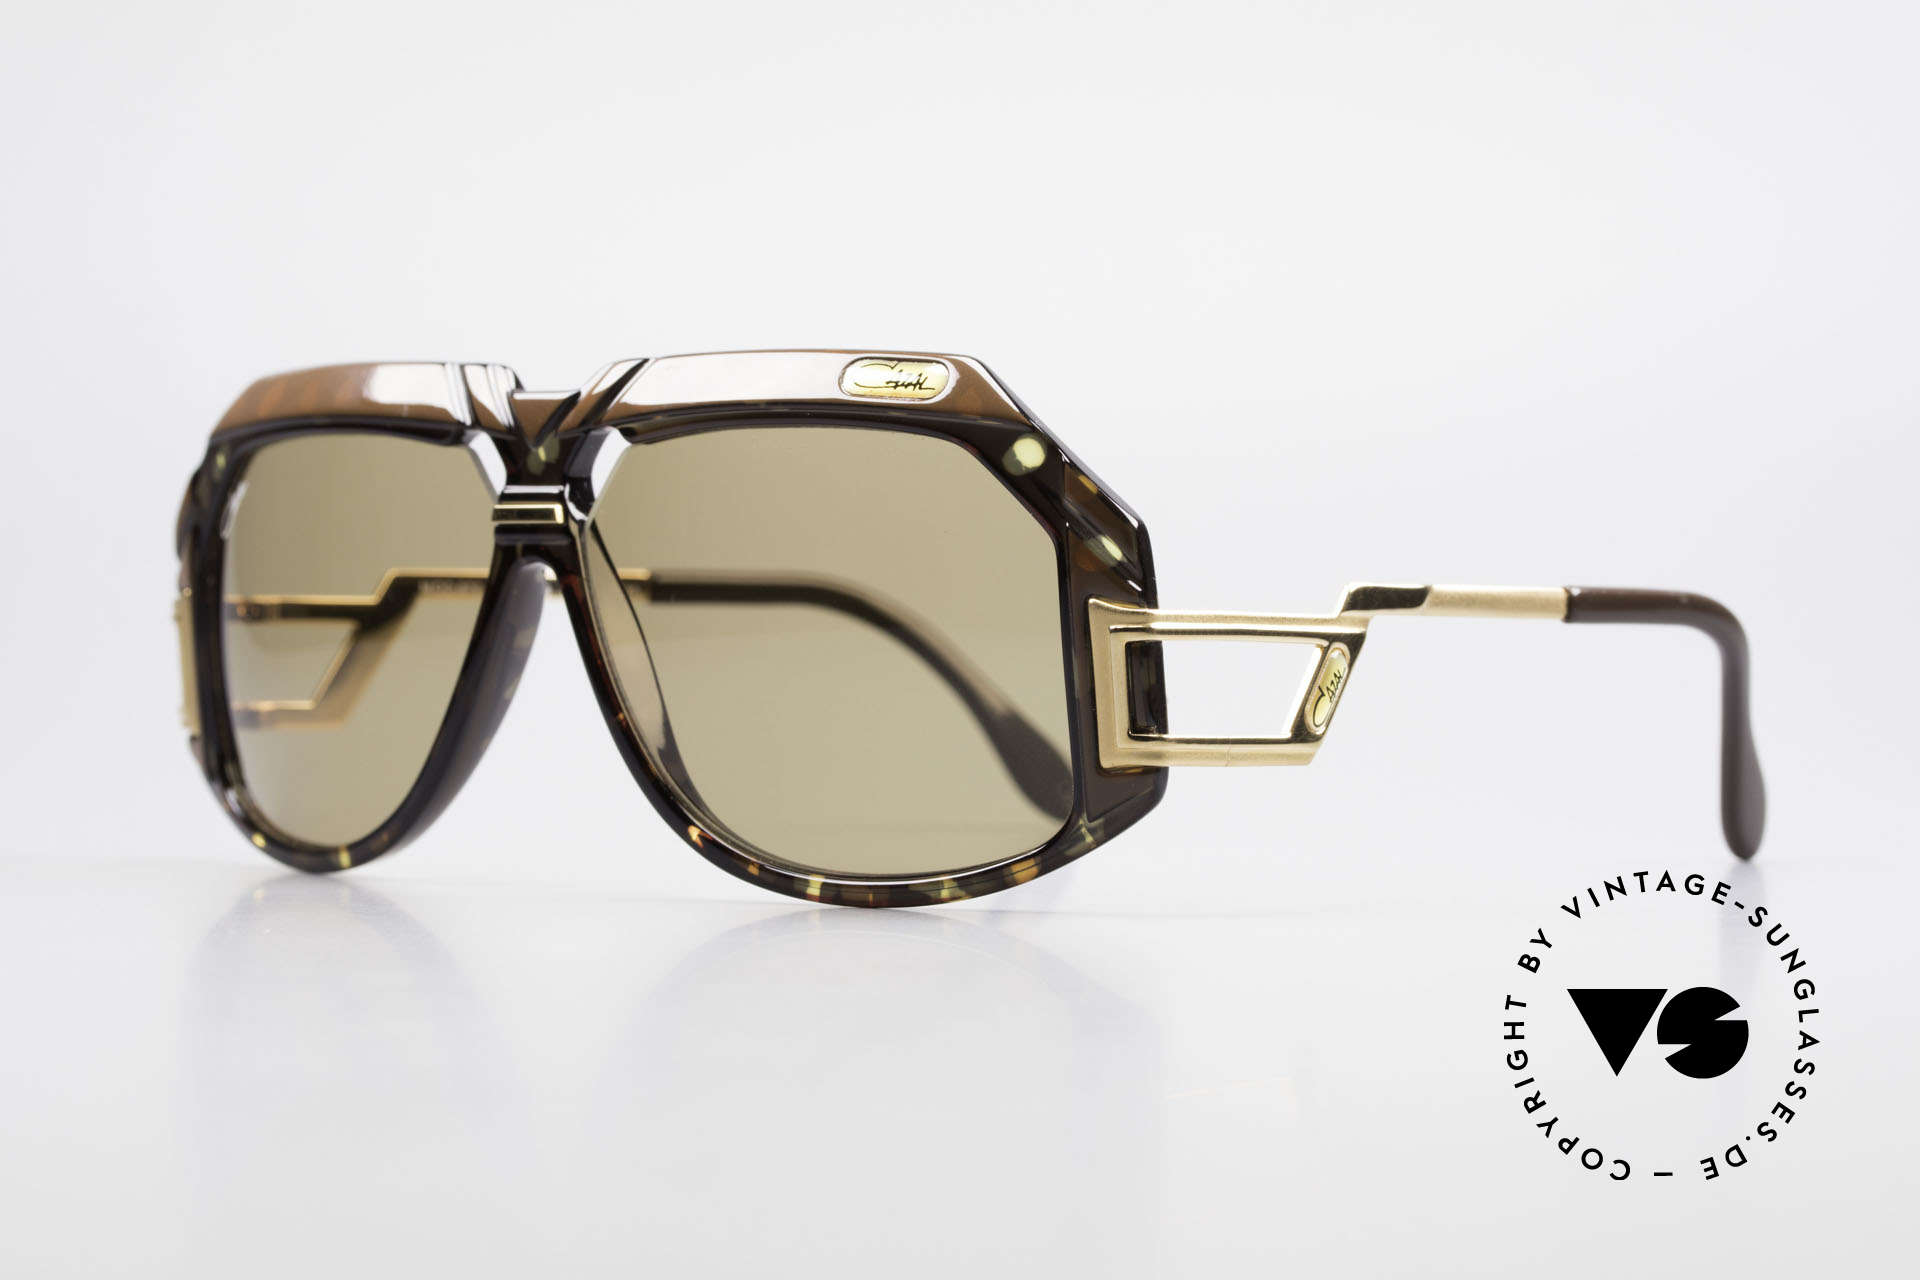 Cazal 870 Rare 80's Designer Shades, a masterpiece by the great CAri ZALloni (Mr. Cazal), Made for Men and Women